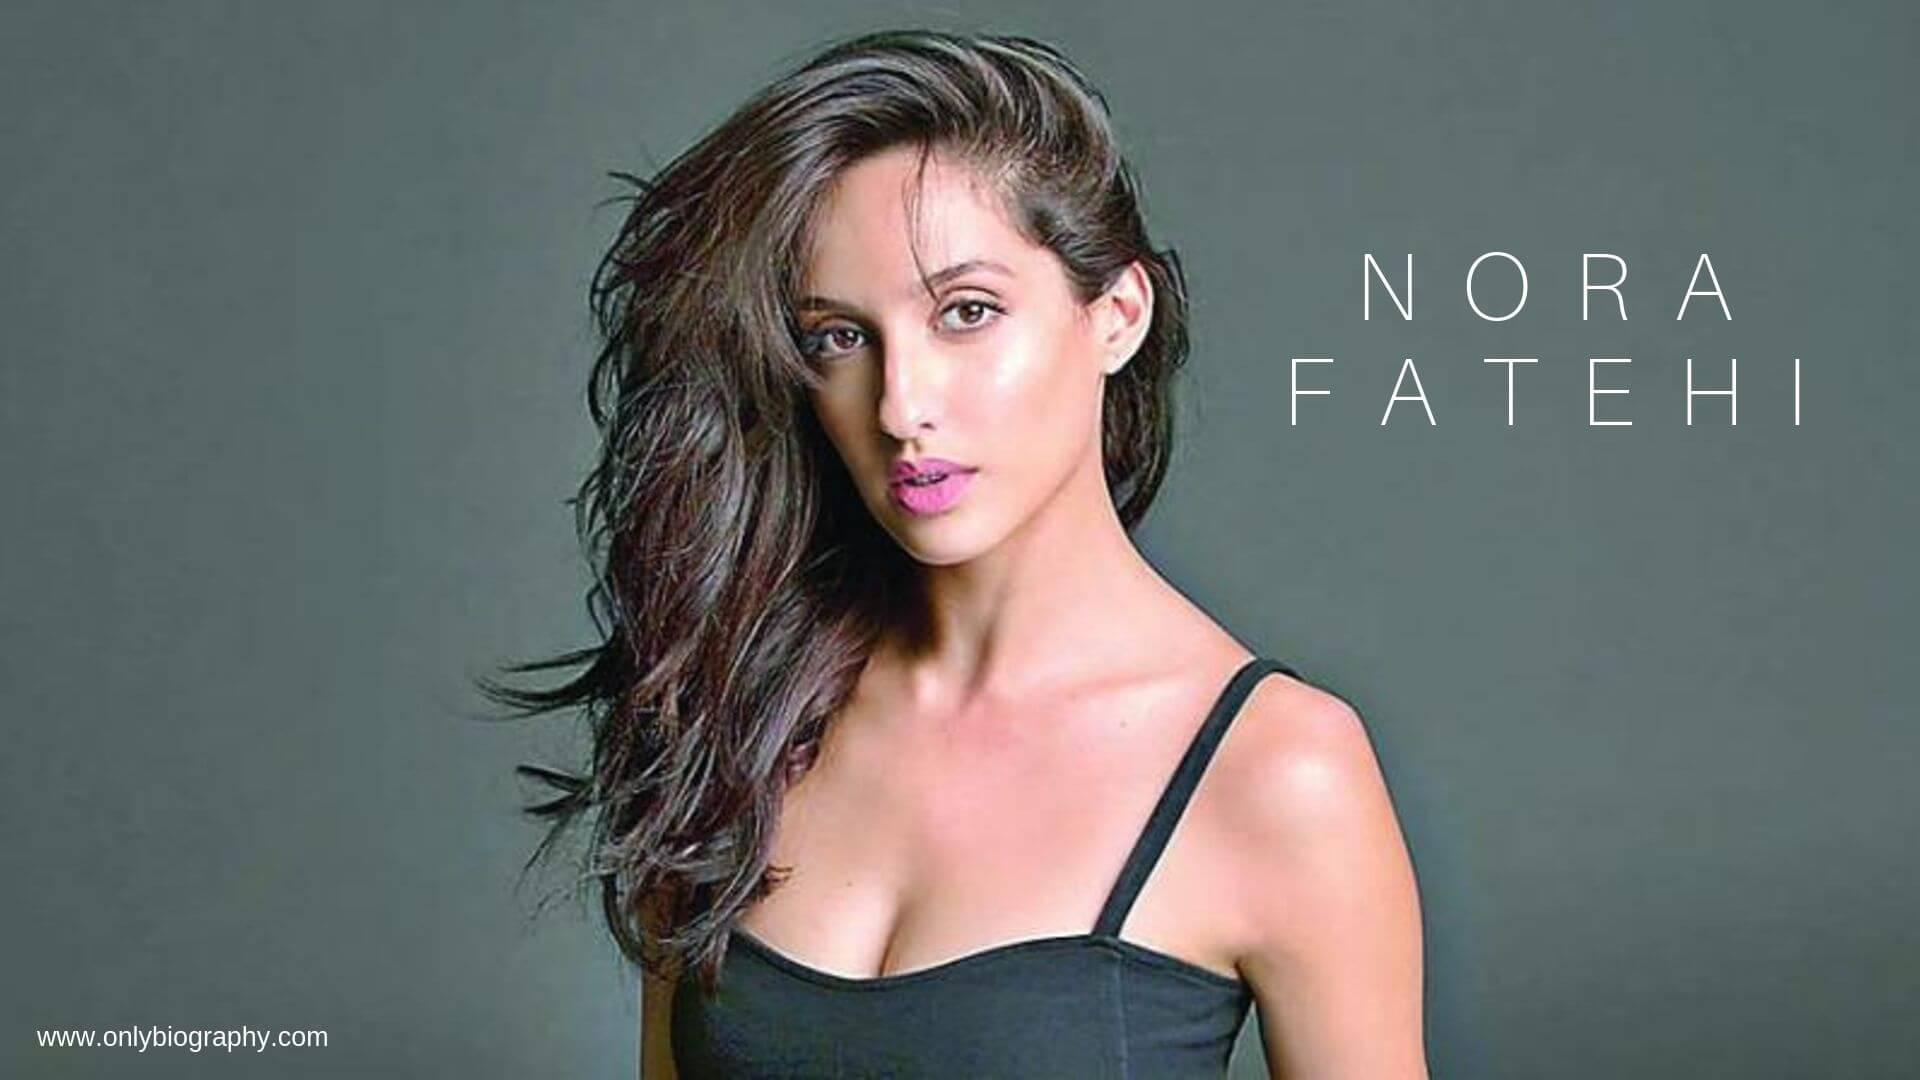 Nora Fatehi Biography Age Height Family Boyfriend And Photos